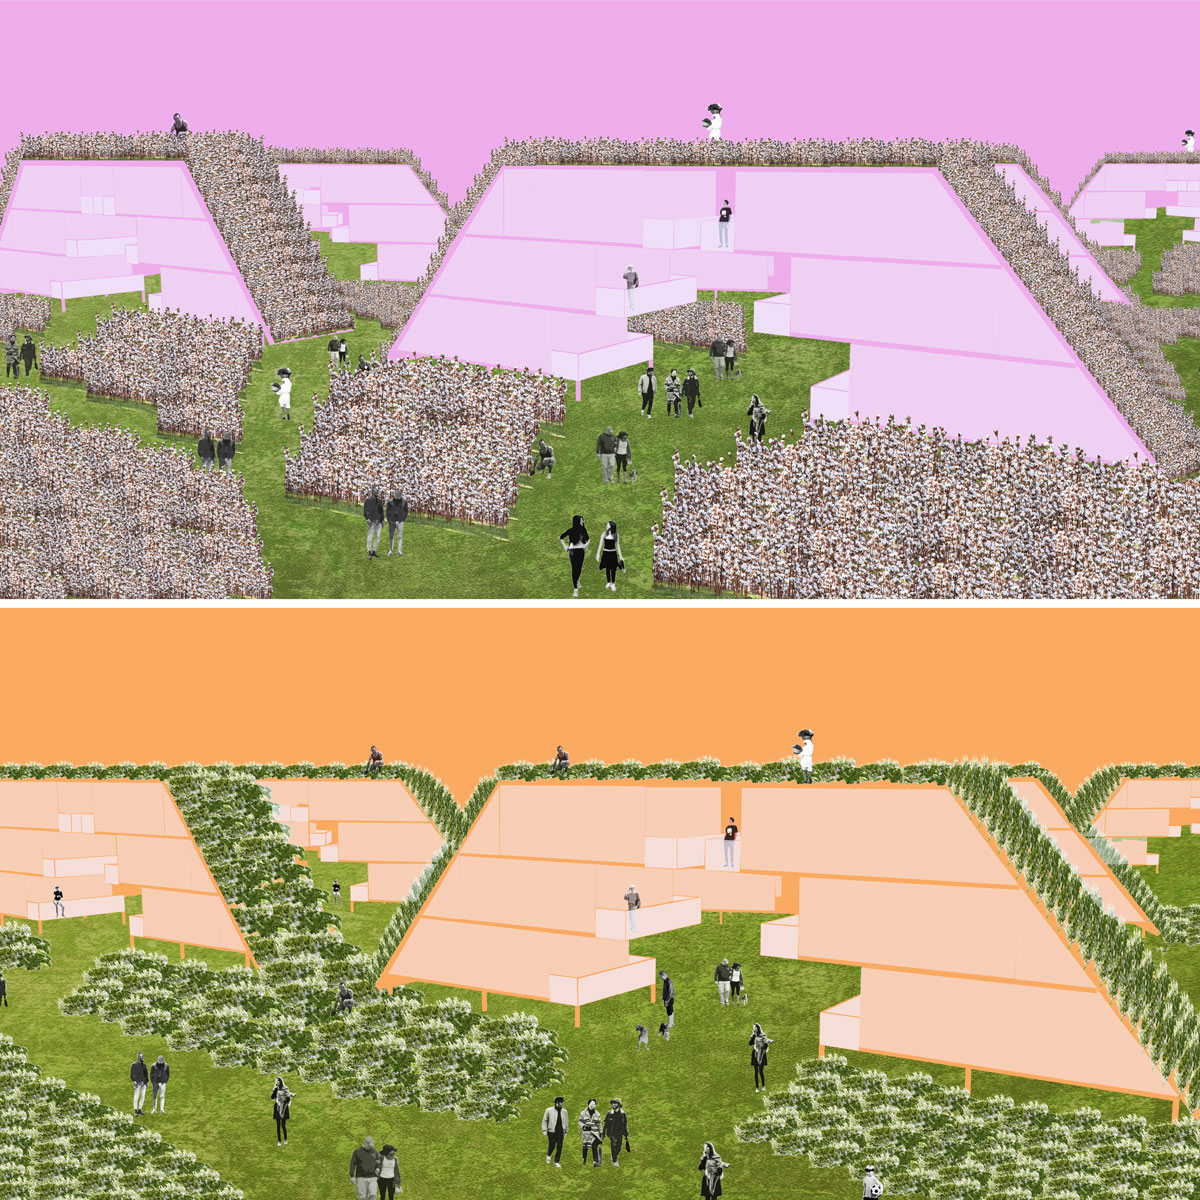 Pair of perspectives illustrating the communal shifts in the farmed landscape between seasons by student Alejandra Lobato